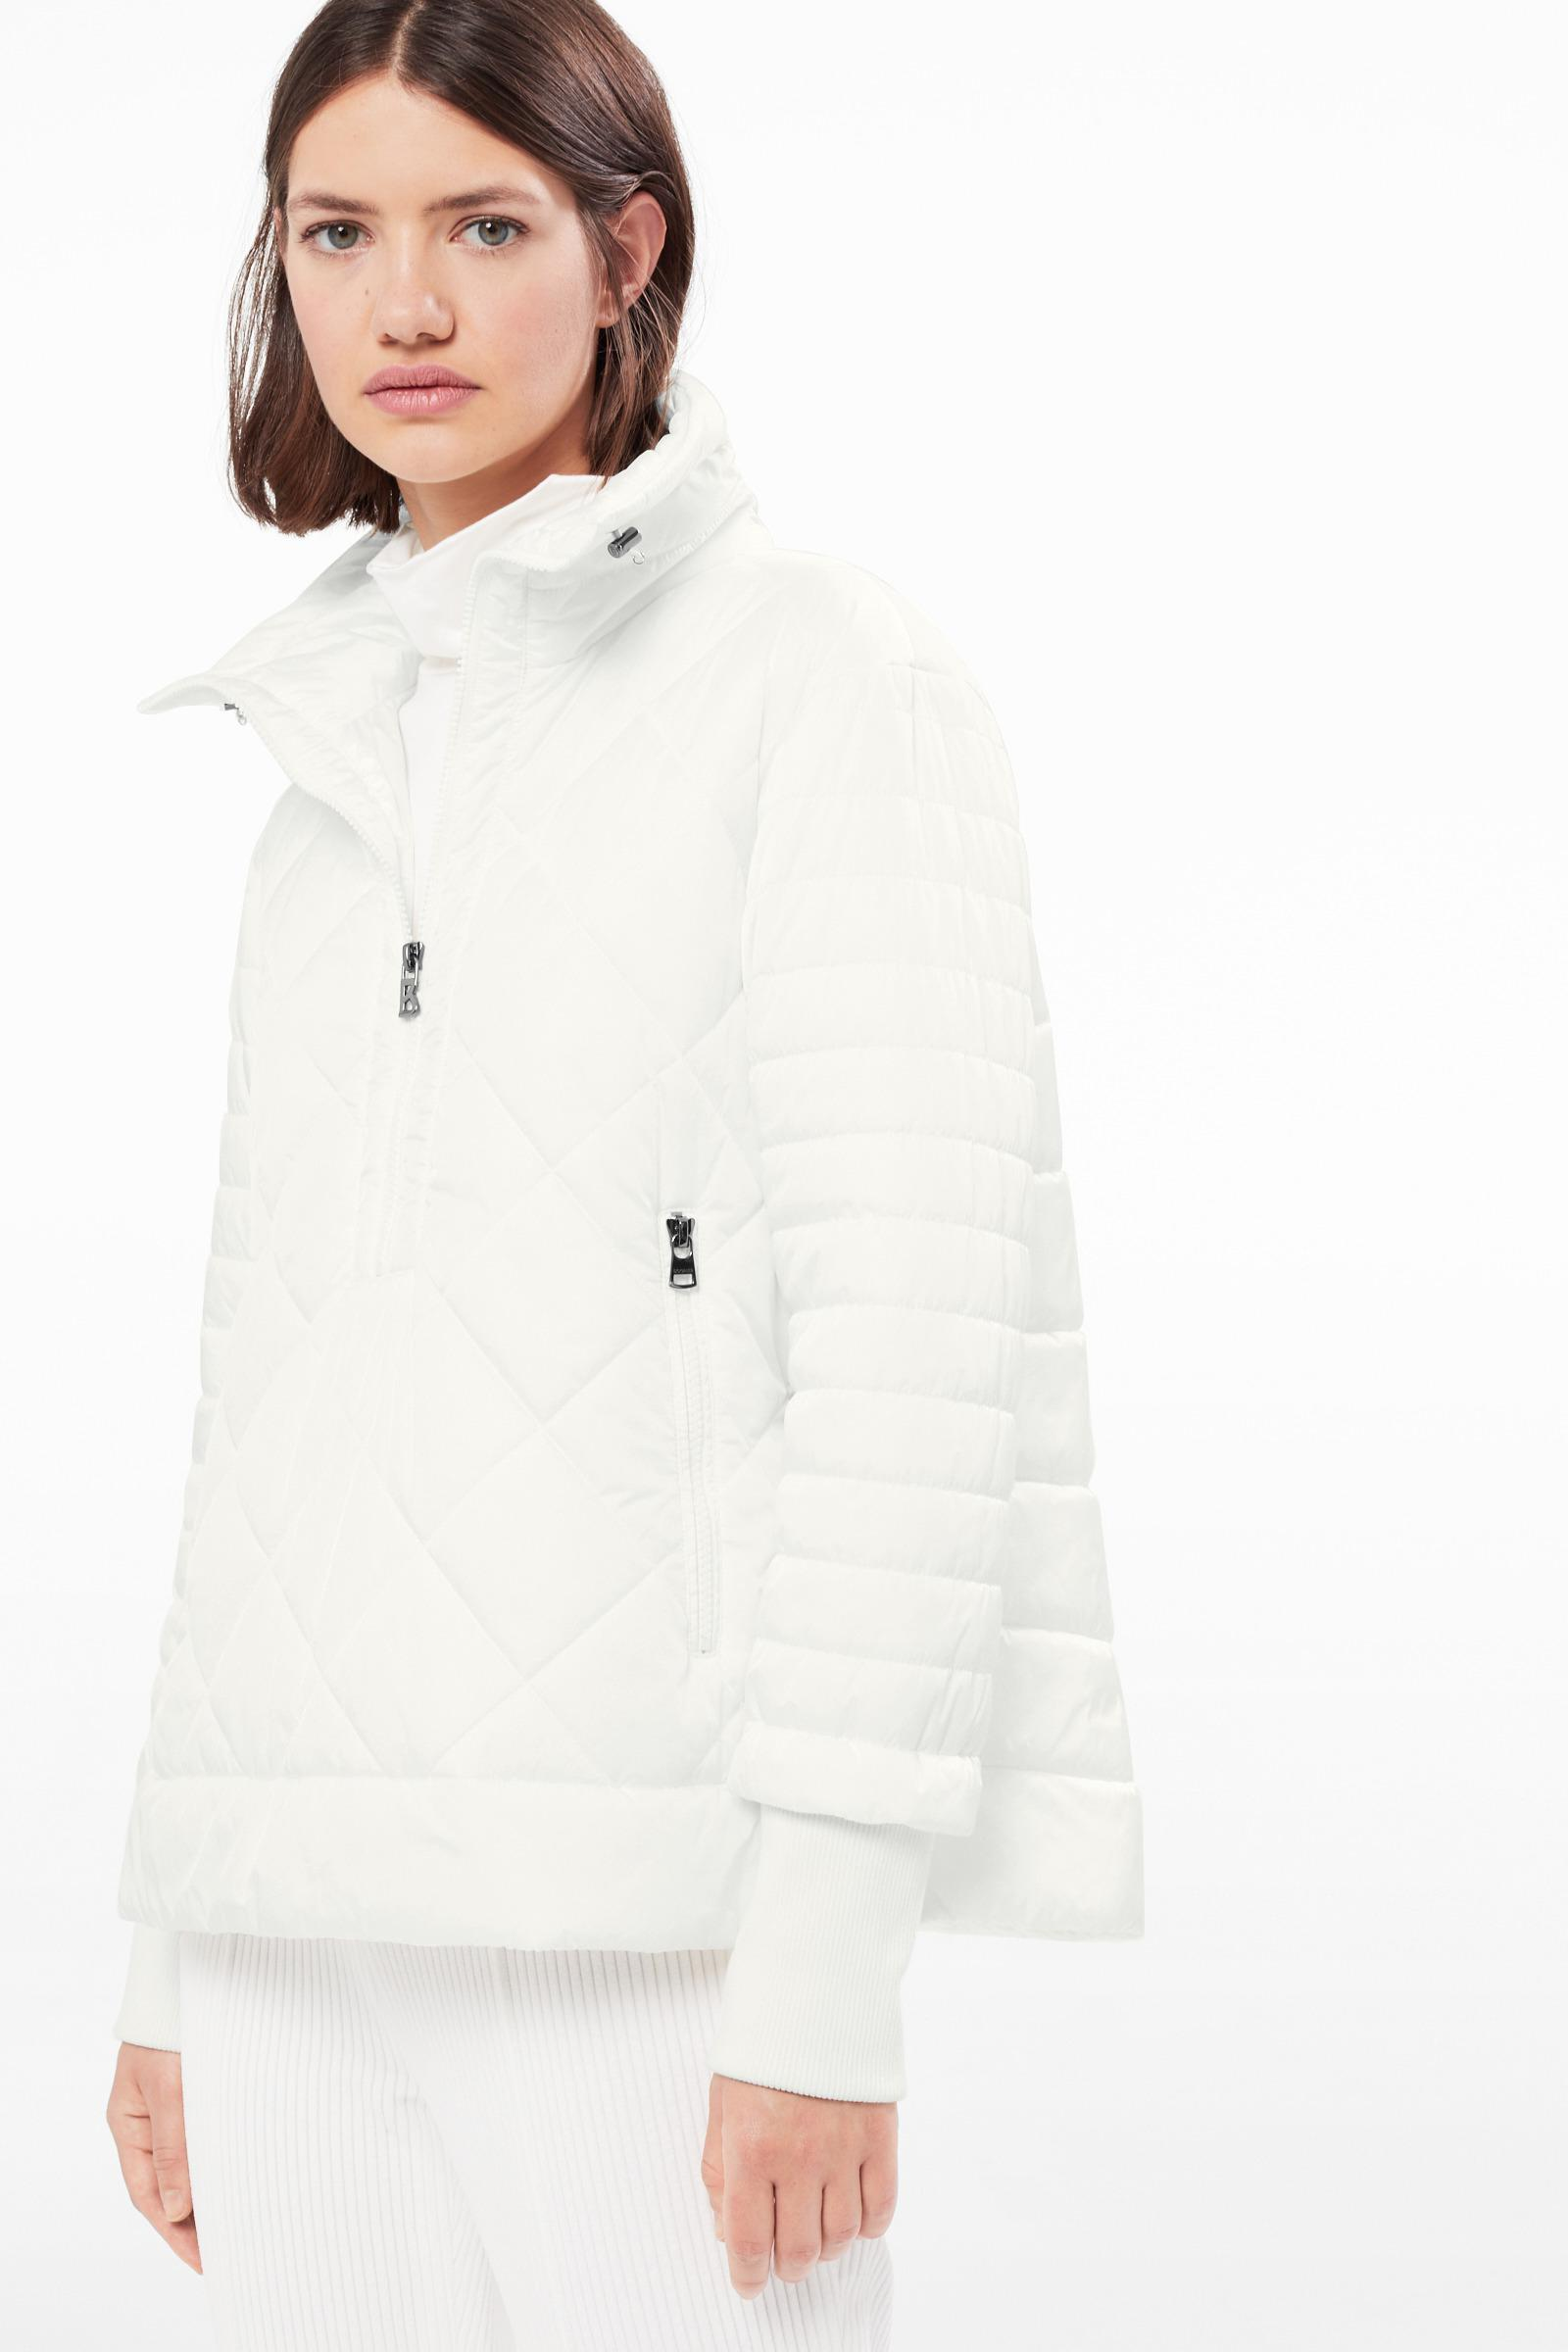 Bogner Casca Quilted Jacket In Off White in White - Lyst 800ae44eb